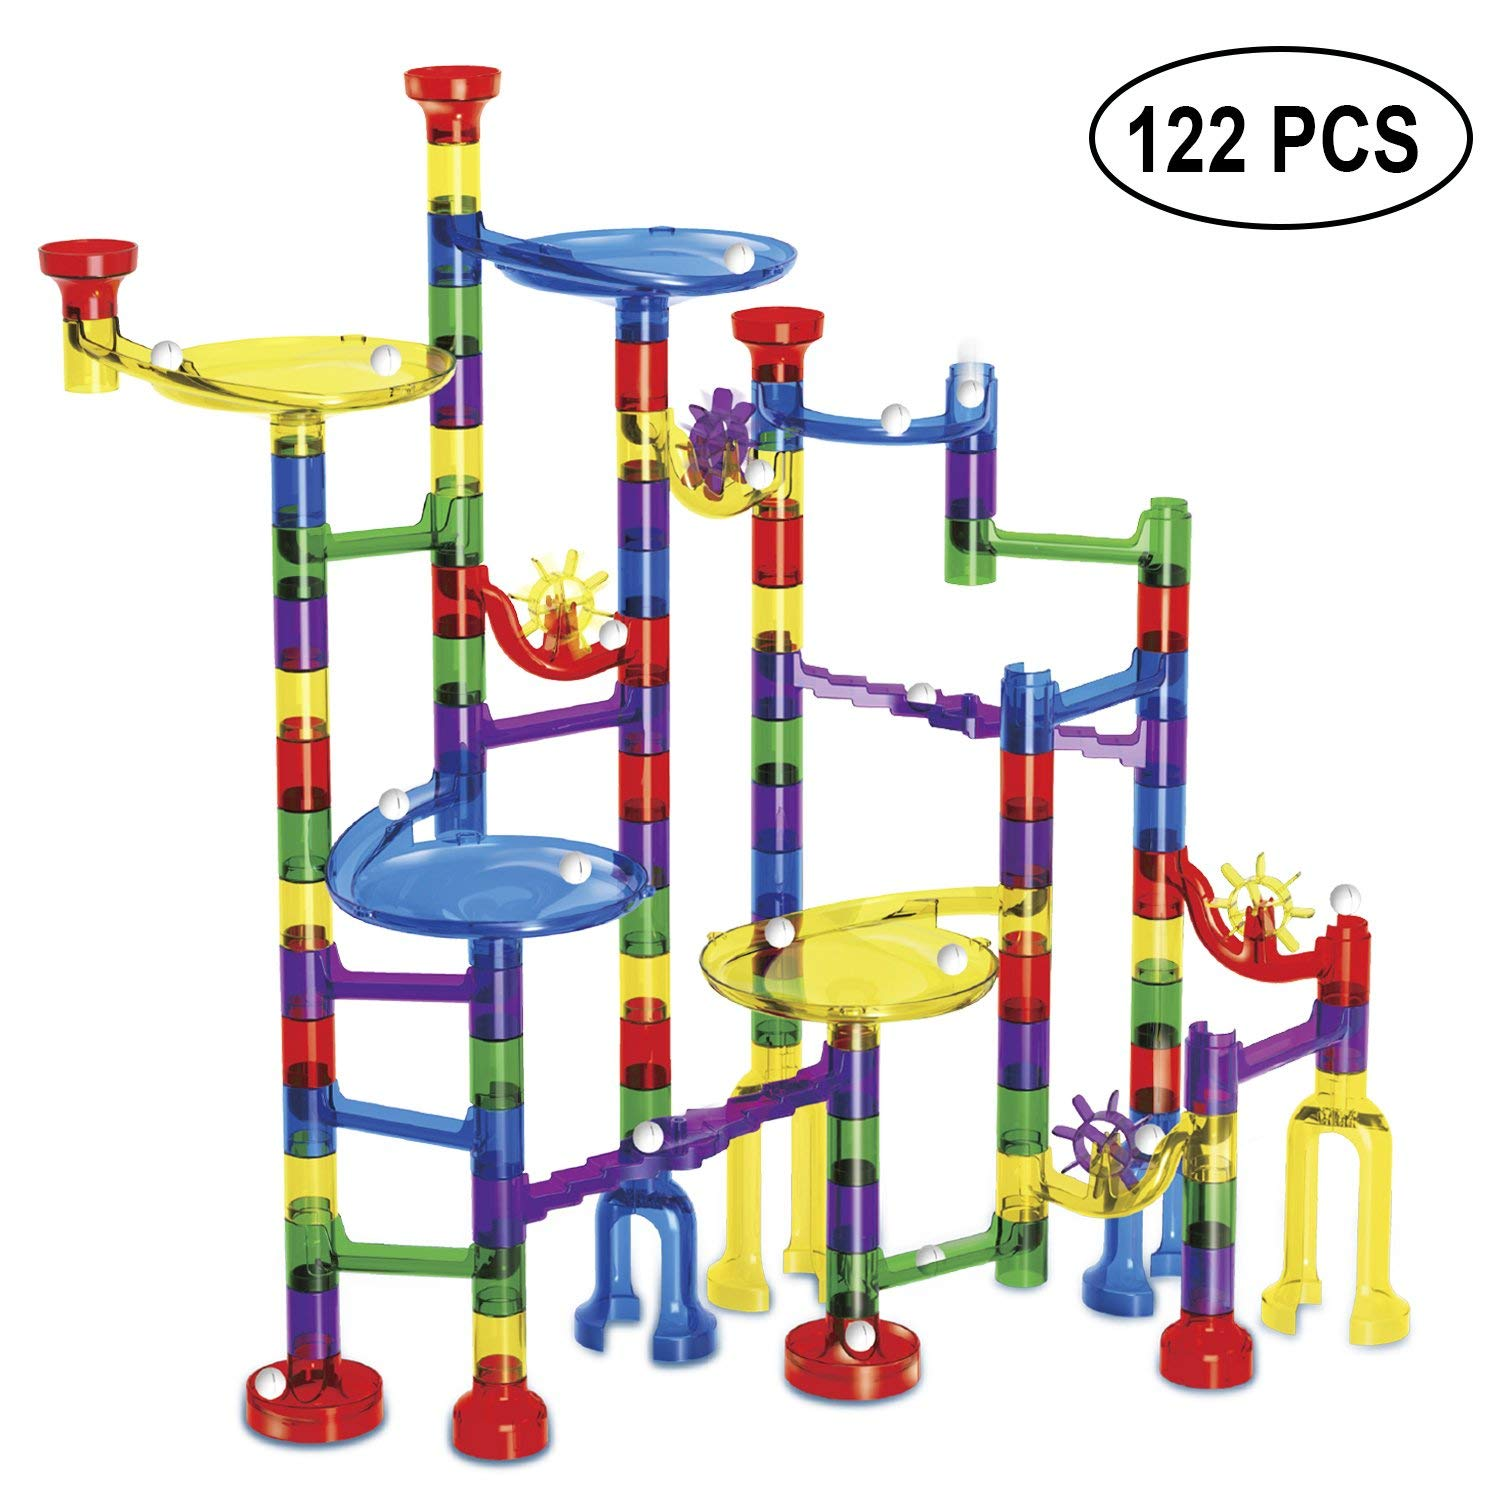 MONILON Marble Run Toy, 122 Pcs Marble Game Race Track Kids STEM Toys for Boys Girls - Learning Educational Construction Building Blocks Gifts Toys for Kids Ages 4 5 6 7 8+ Years Old